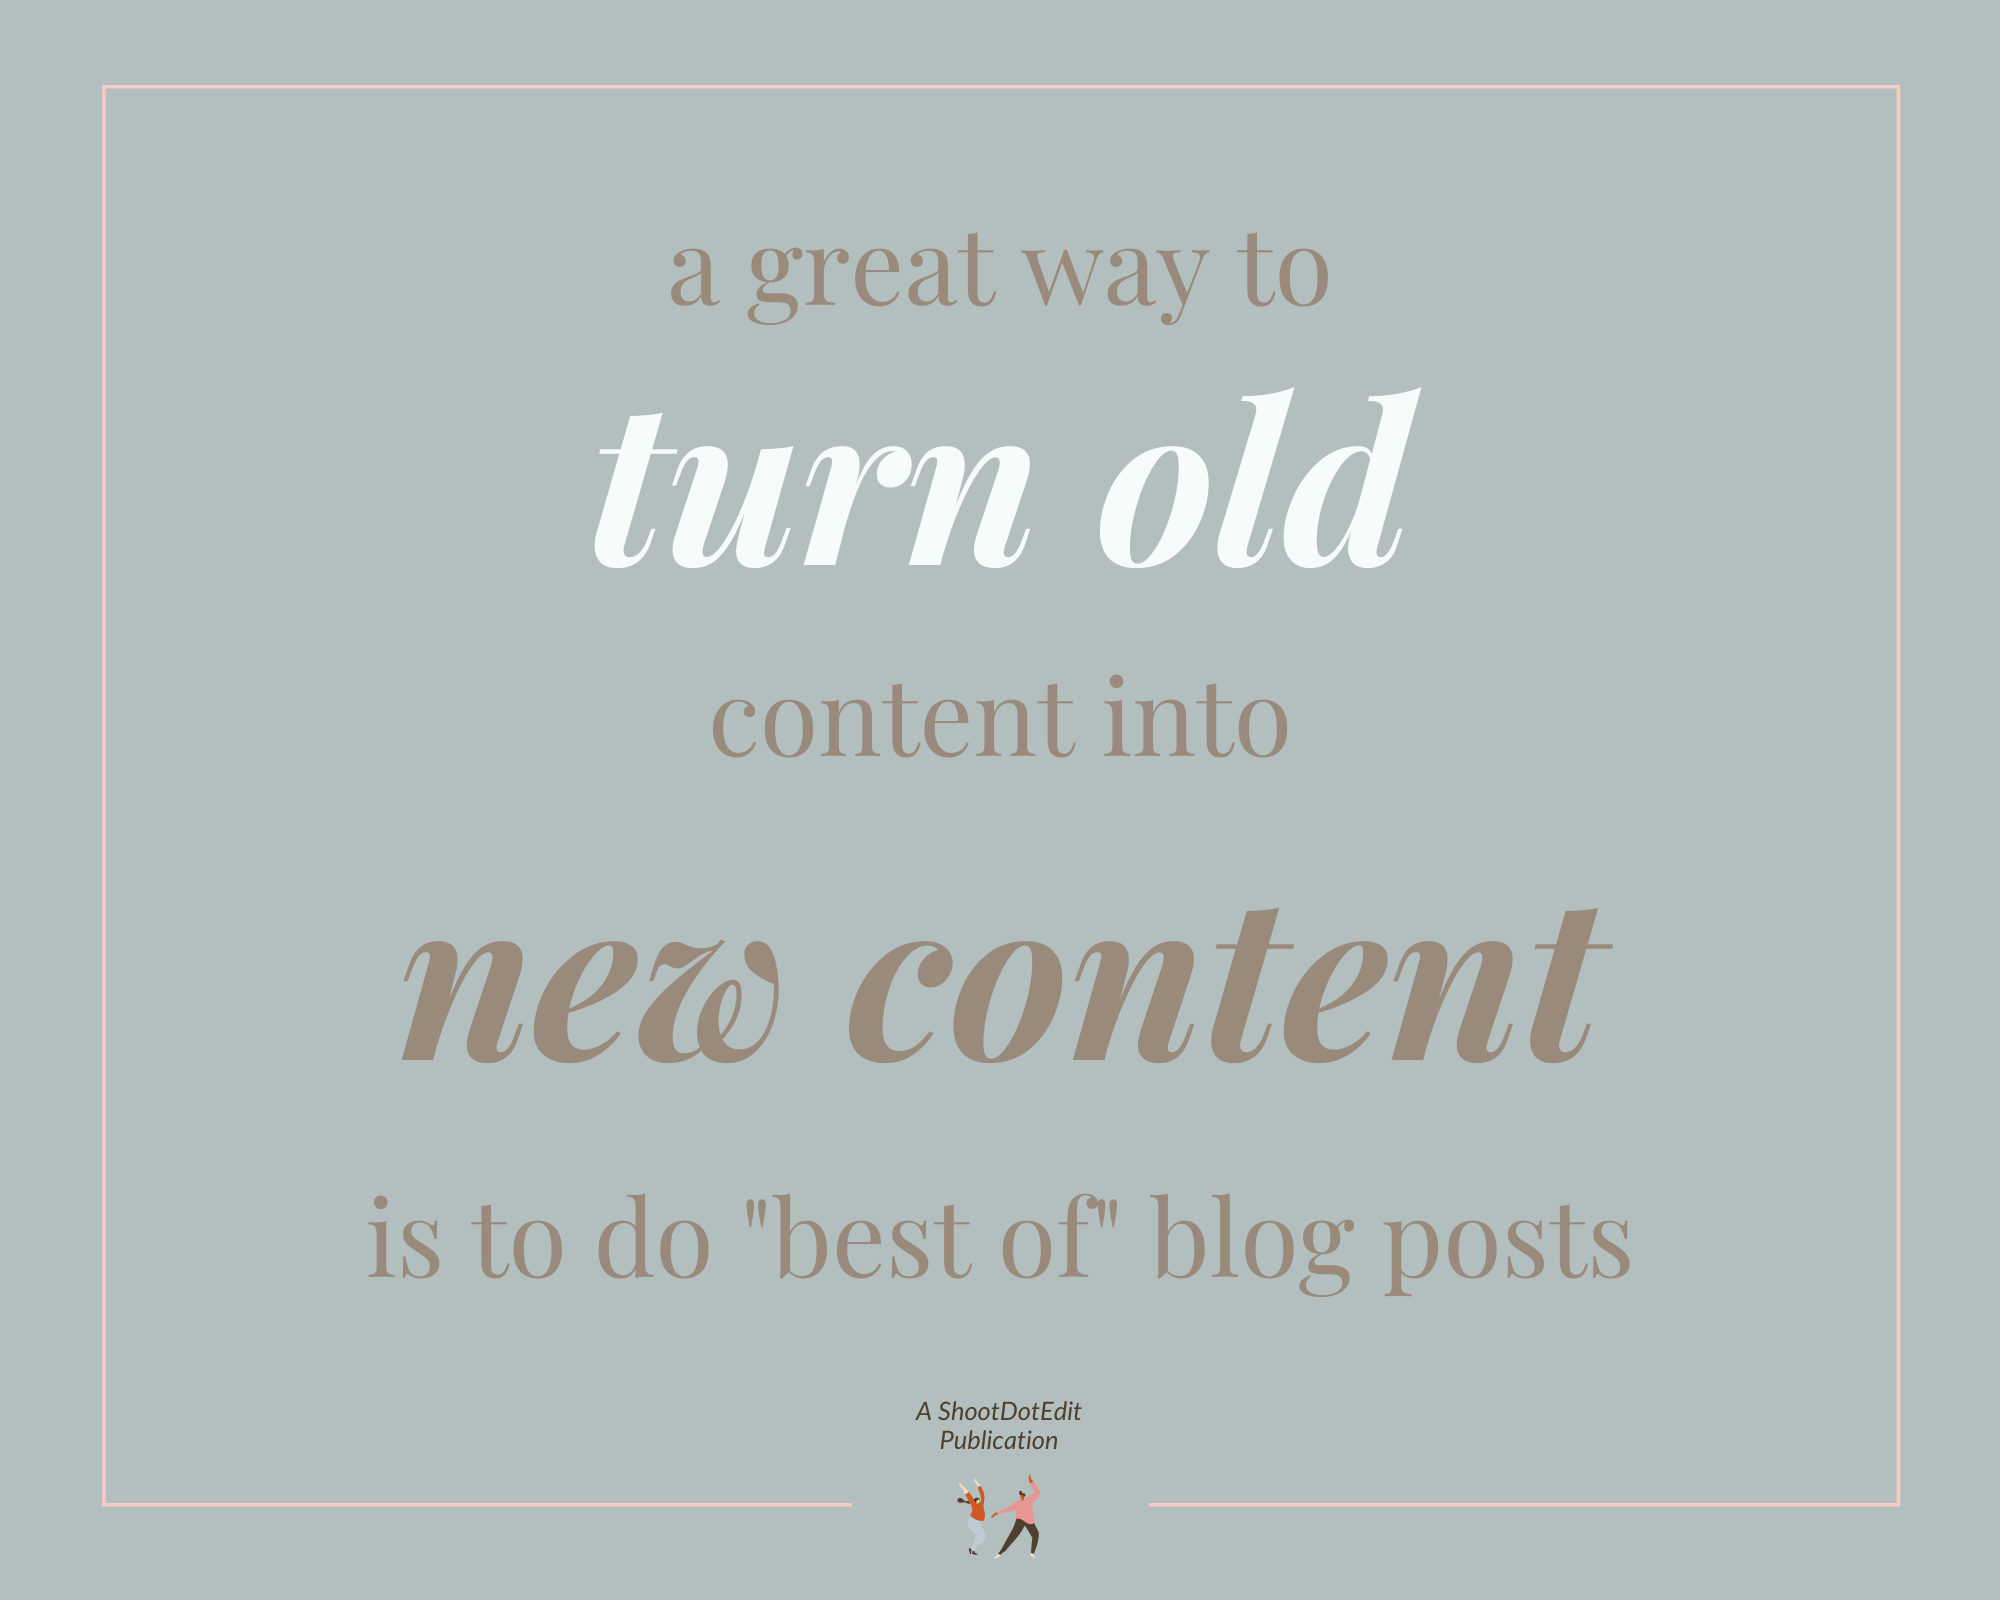 """Infographic stating a great way to turn old content into new content is to do """"best of"""" blog posts"""